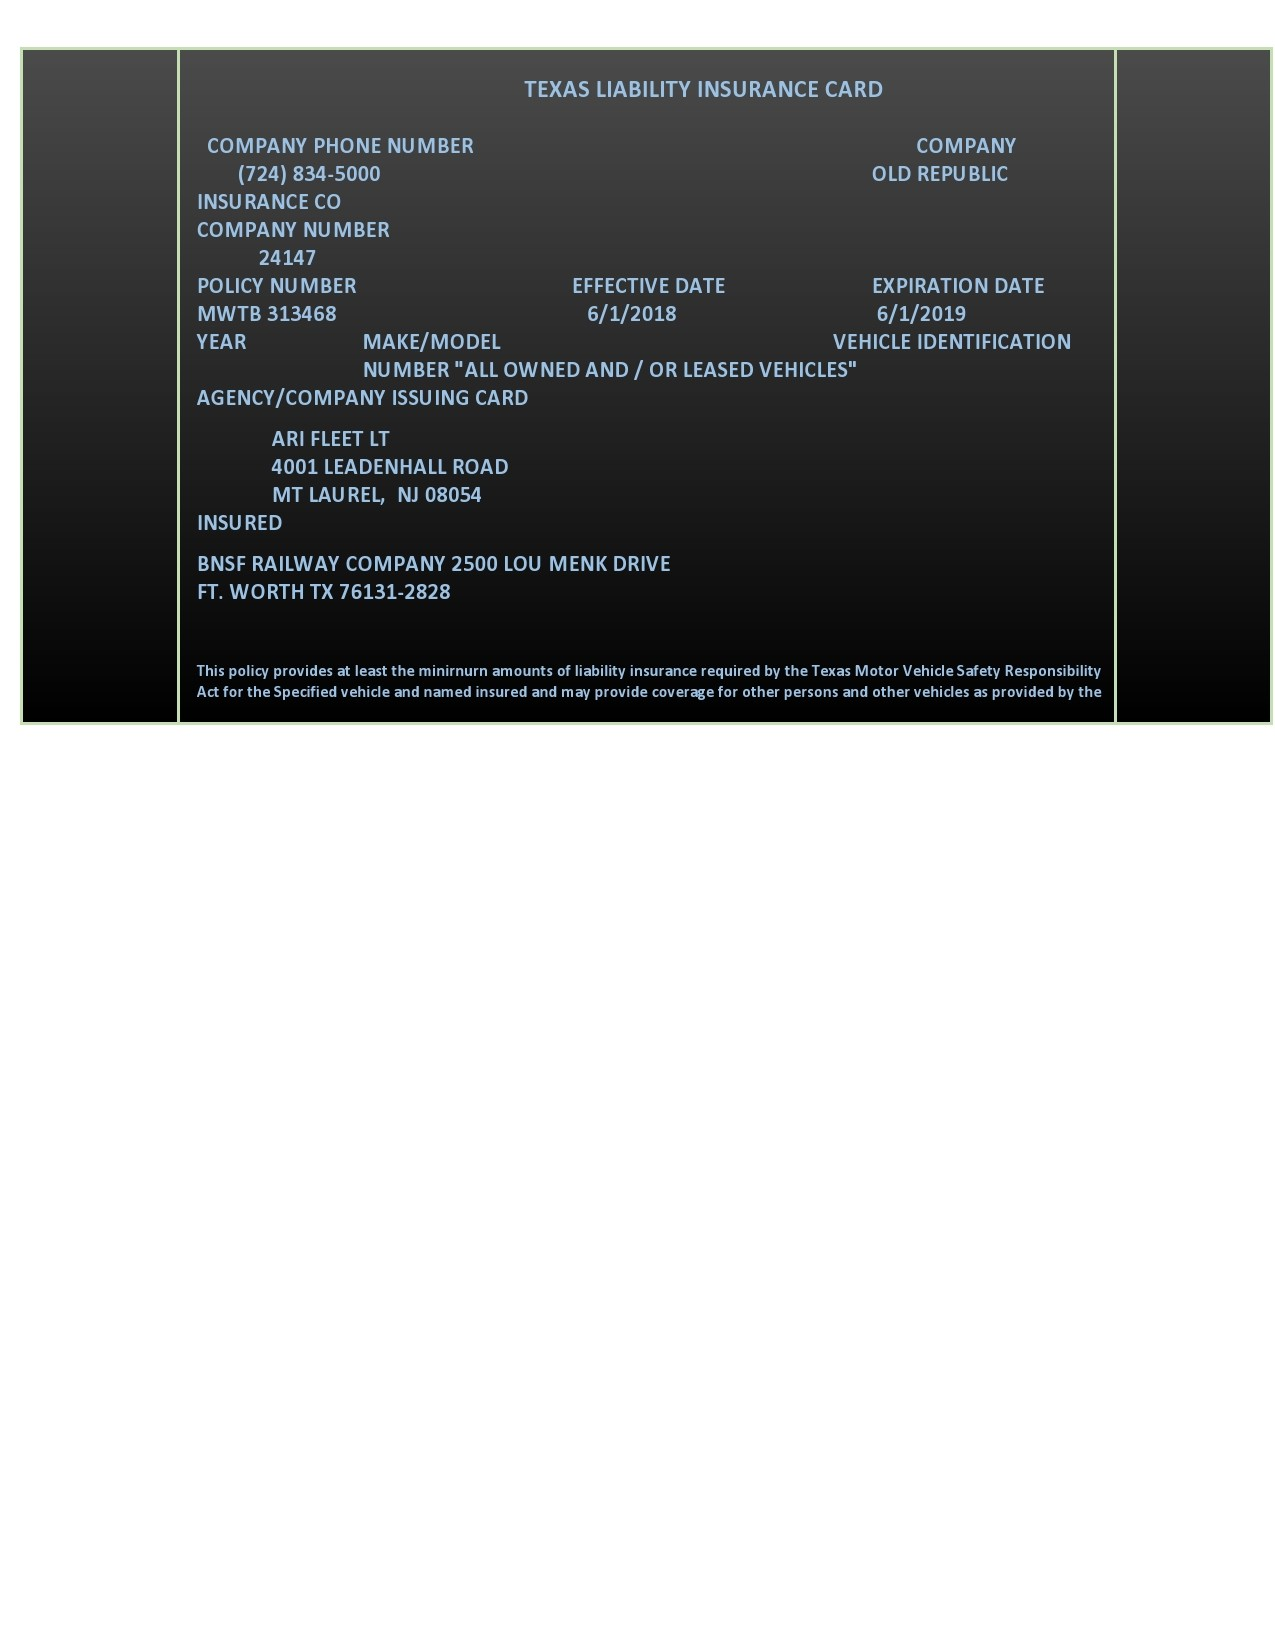 Free insurance card template 08